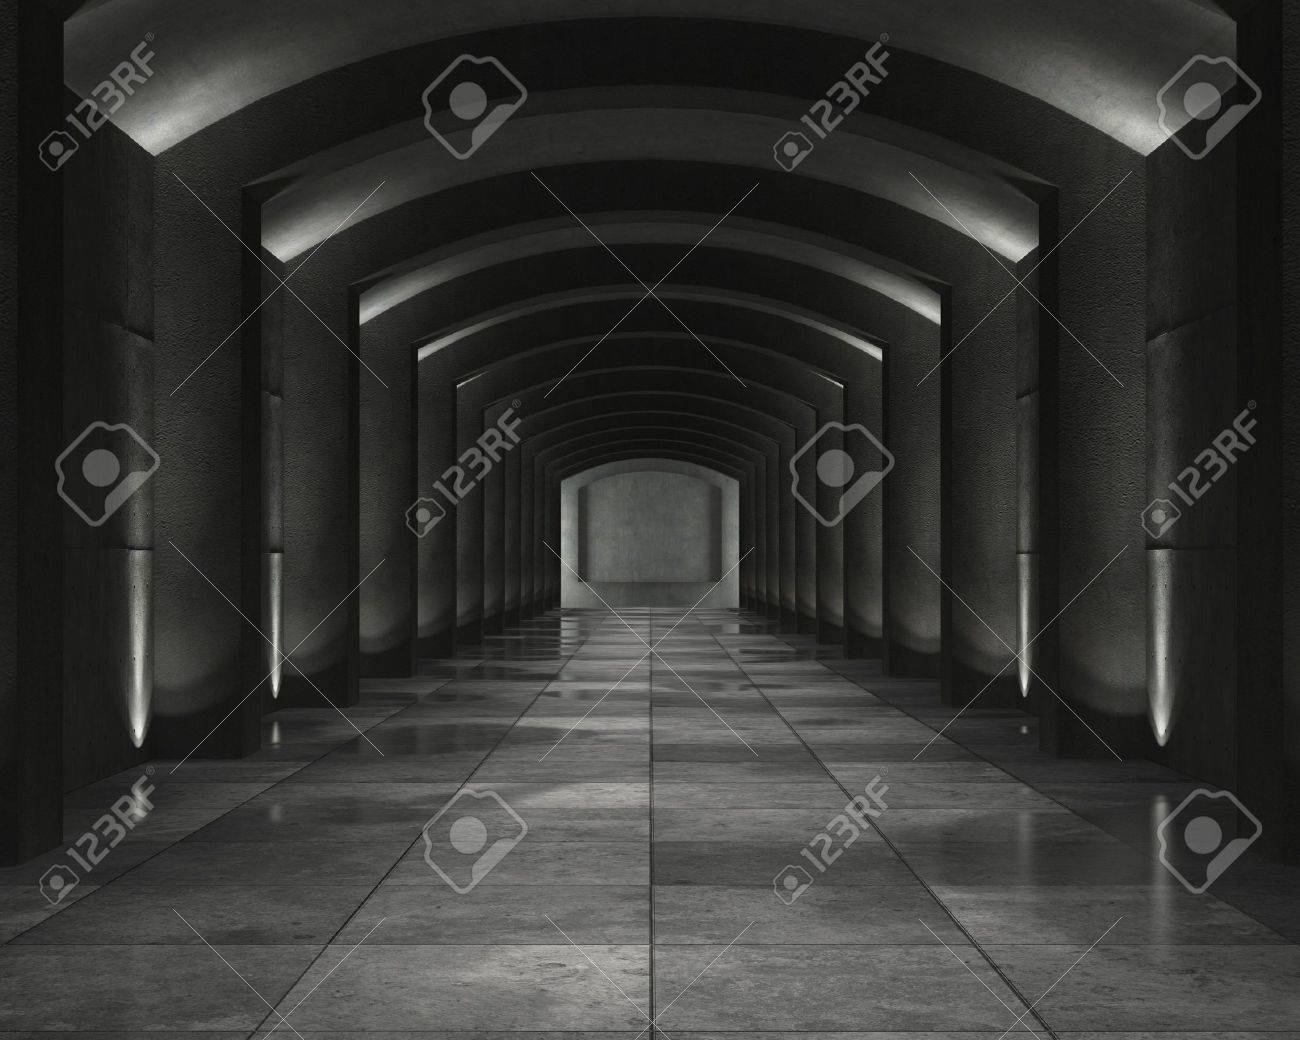 grunge background of an interior concrete vault with interesting spot lighting Stock Photo - 6052812